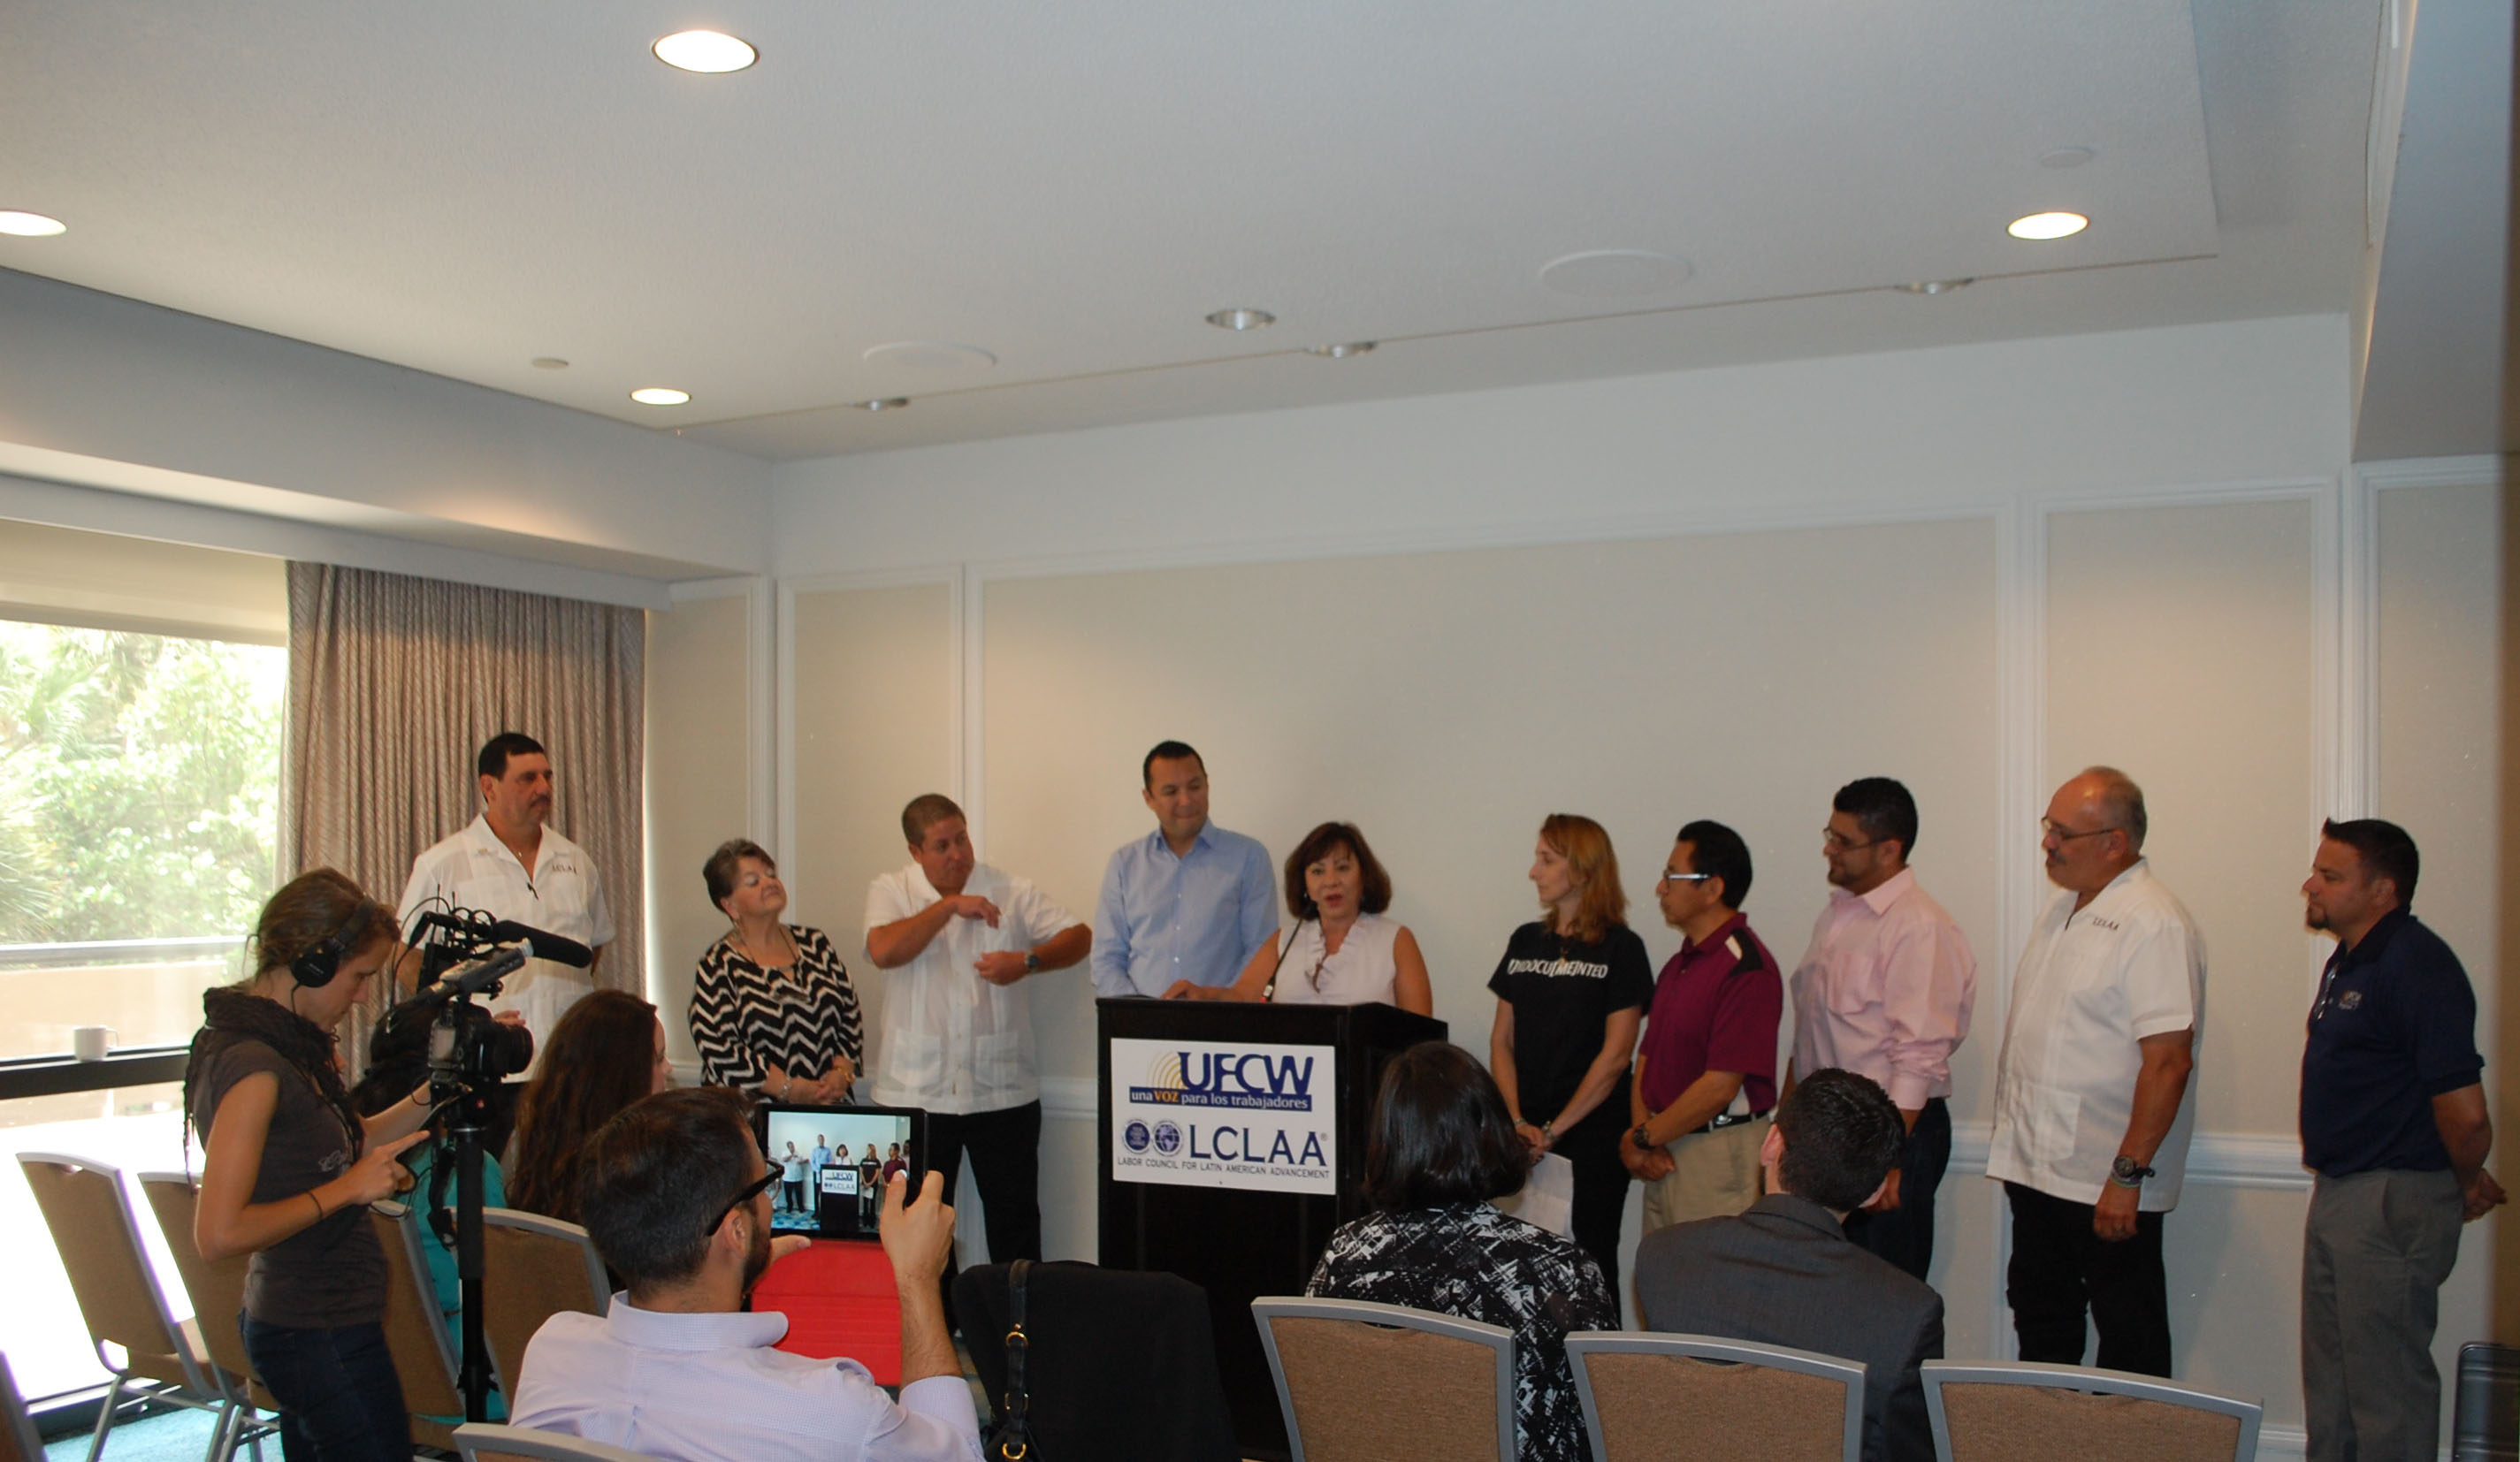 UFCW Executive Vice President Esther Lopez, accompanied by the LCLAA board, addresses the press  at LCLAA's regional conference.